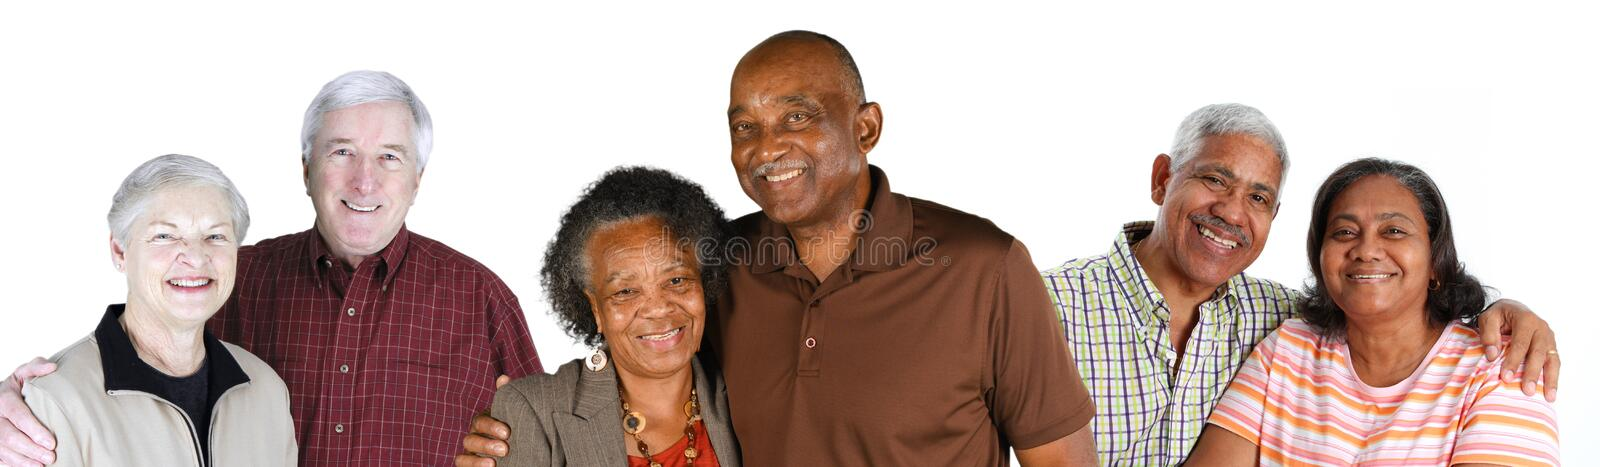 Group of Elderly Couples royalty free stock photo